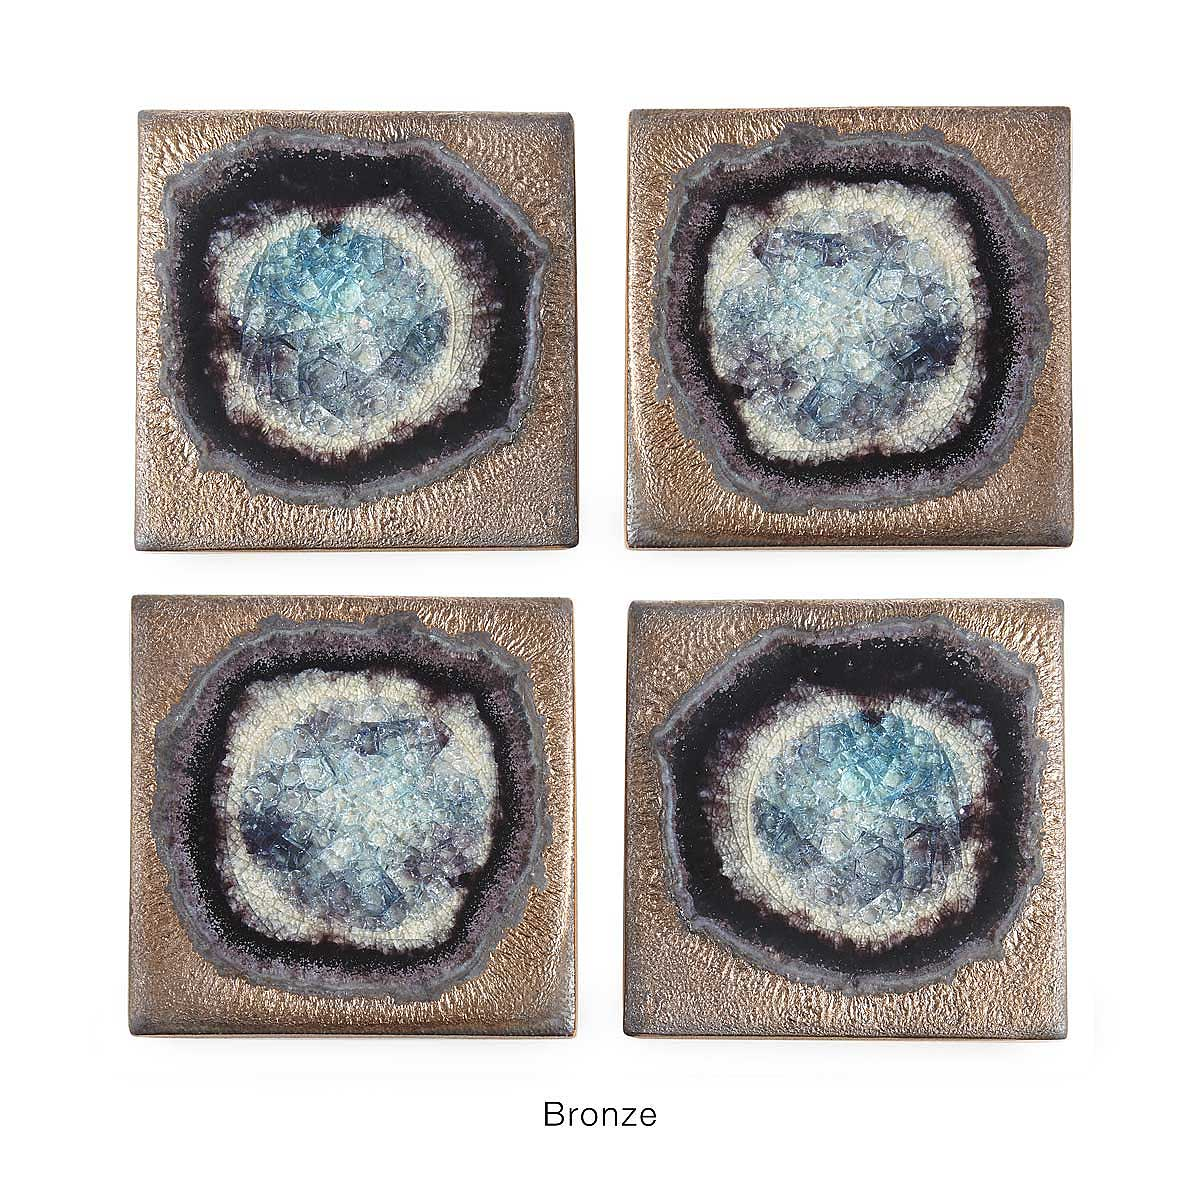 stoneware and crackled glass coaster sets  coasters glazed  - stoneware and crackled glass coaster sets  thumbnail